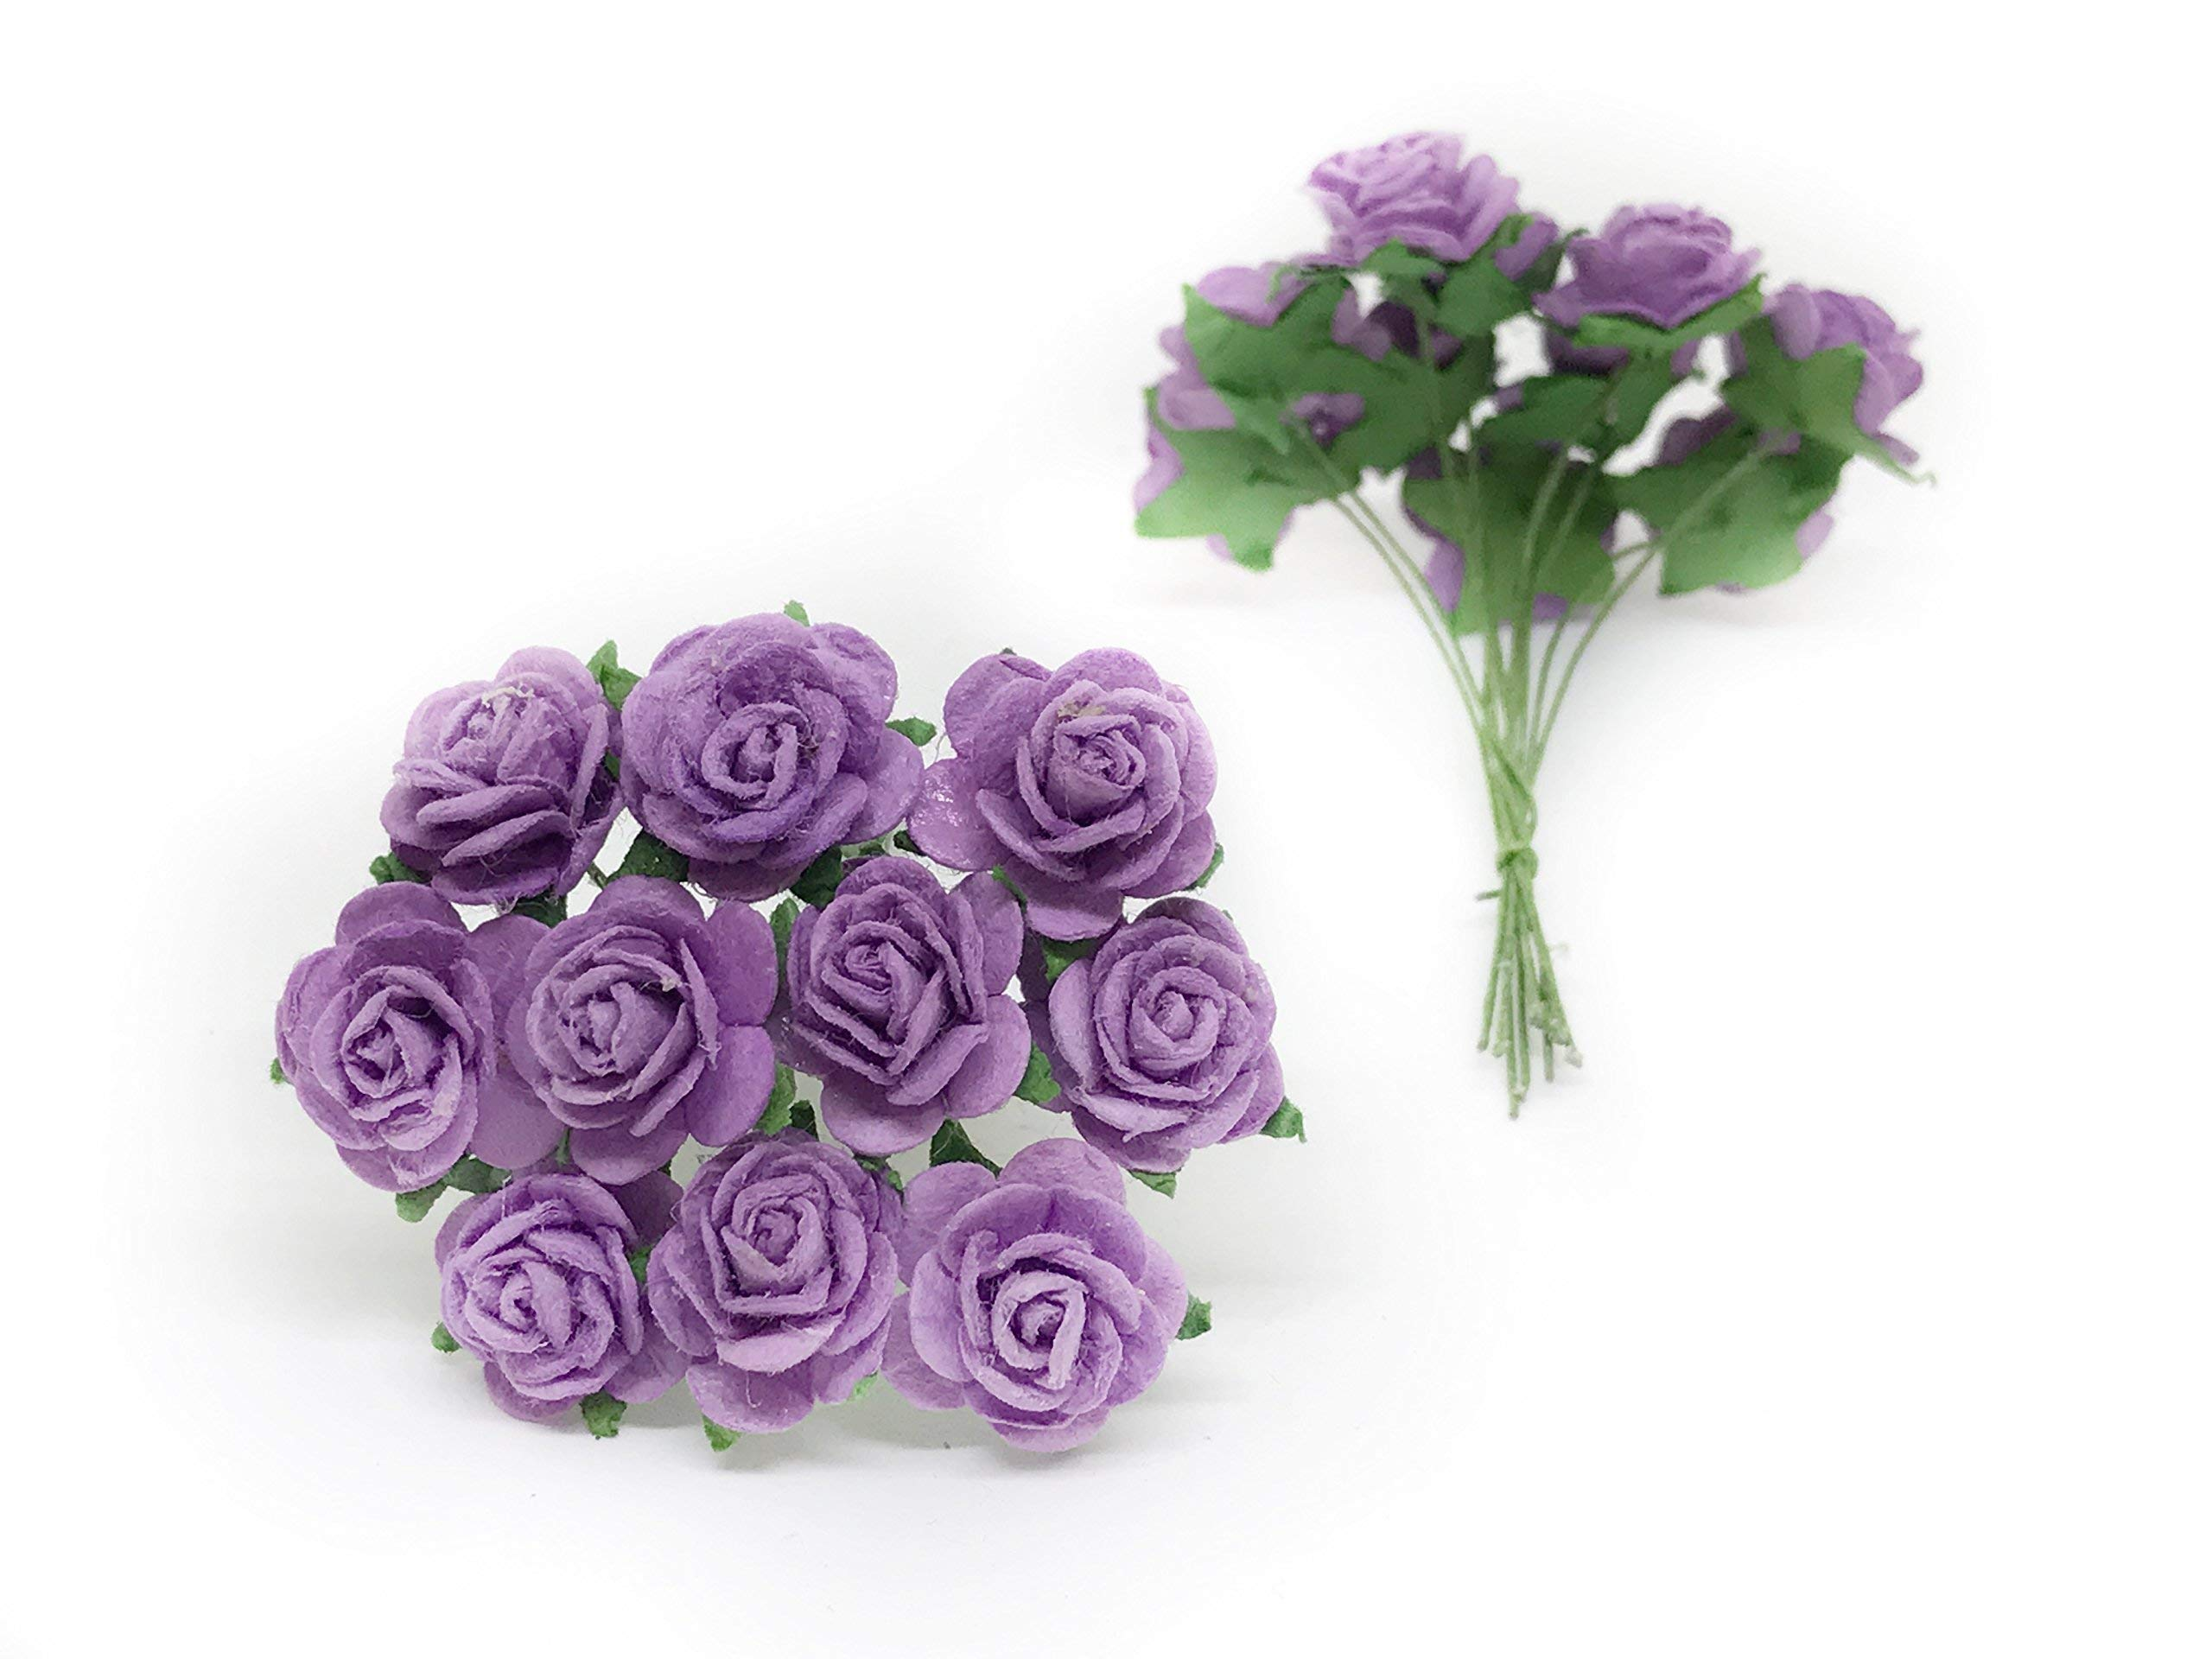 12-Lilac-Purple-Mulberry-Paper-Flowers-Paper-Rose-Lilac-Flowers-Floral-Crown-Flowers-DIY-Wedding-Wedding-Decor-Wedding-Table-Flowers-Lilac-Wedding-Artificial-Flowers-50-Pieces